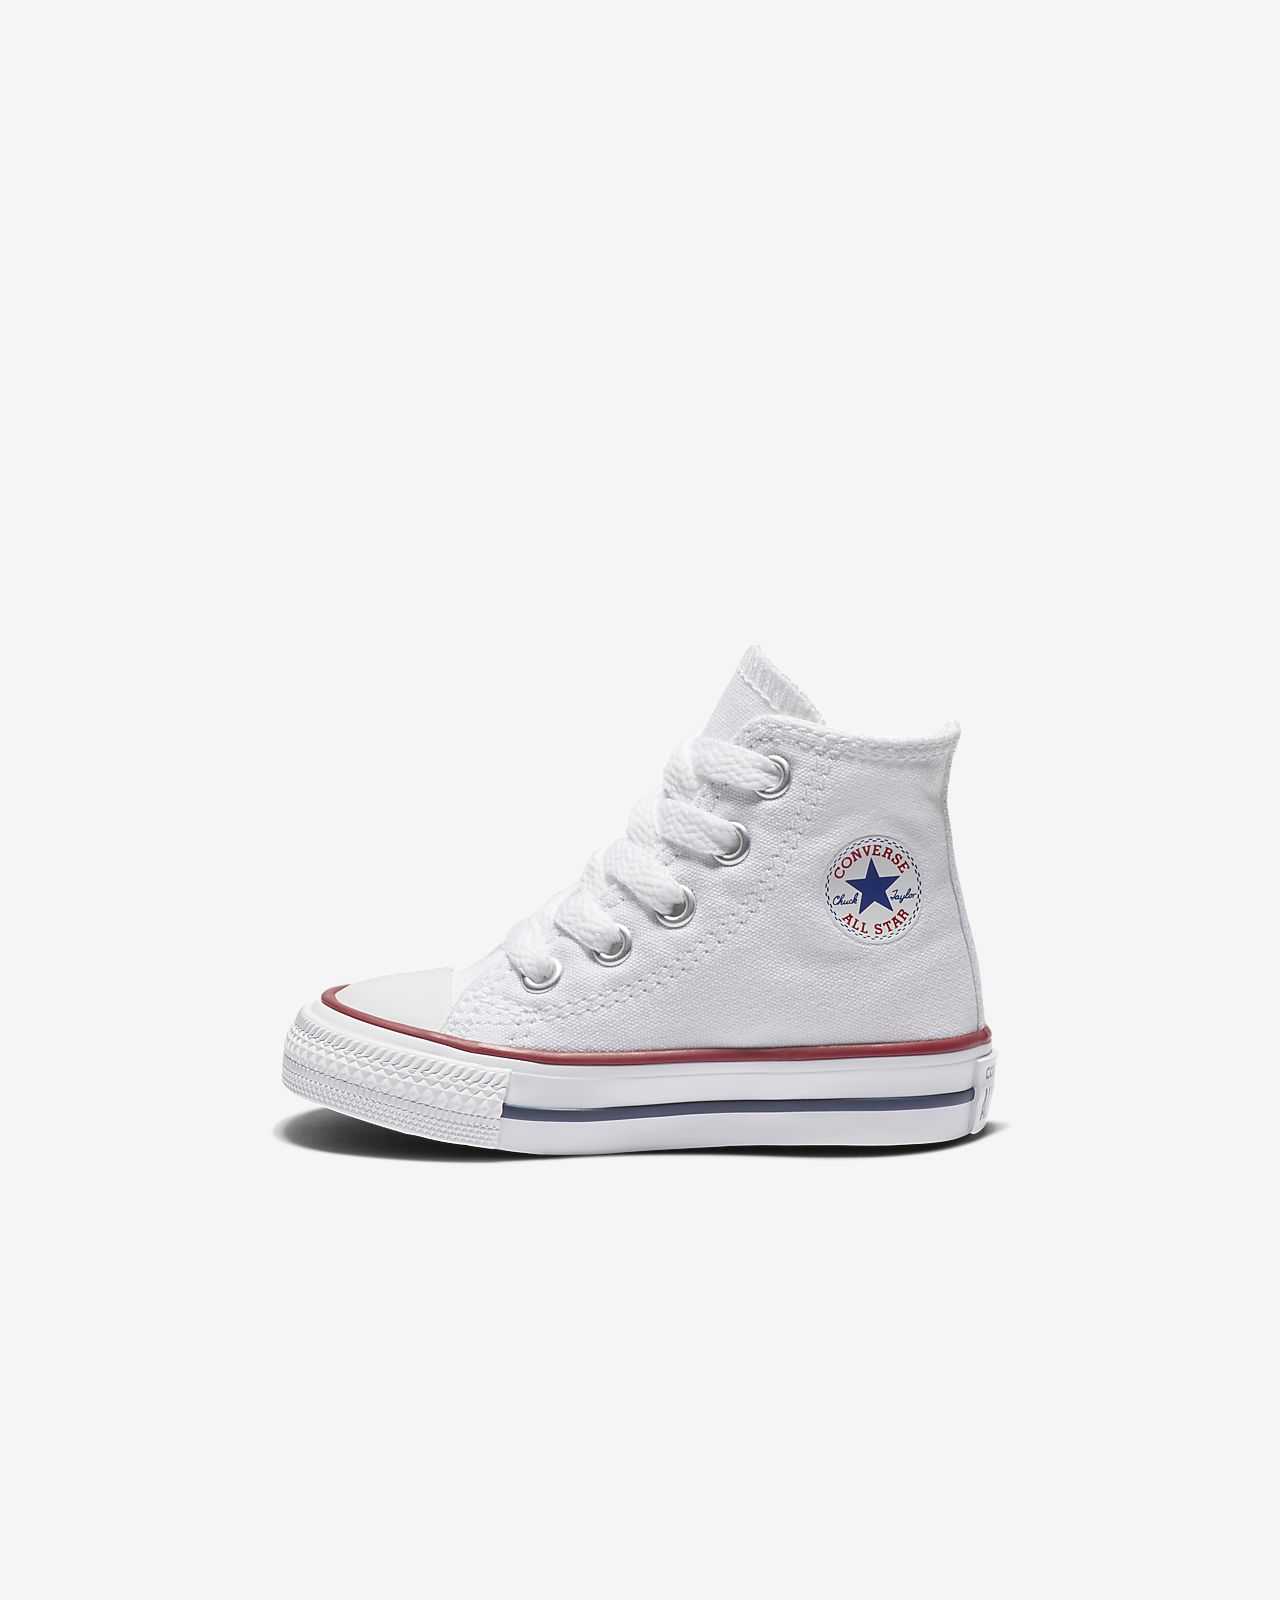 56a4ac96b649 Converse Chuck Taylor All Star High Top (2c-10c) Infant Toddler Shoe ...